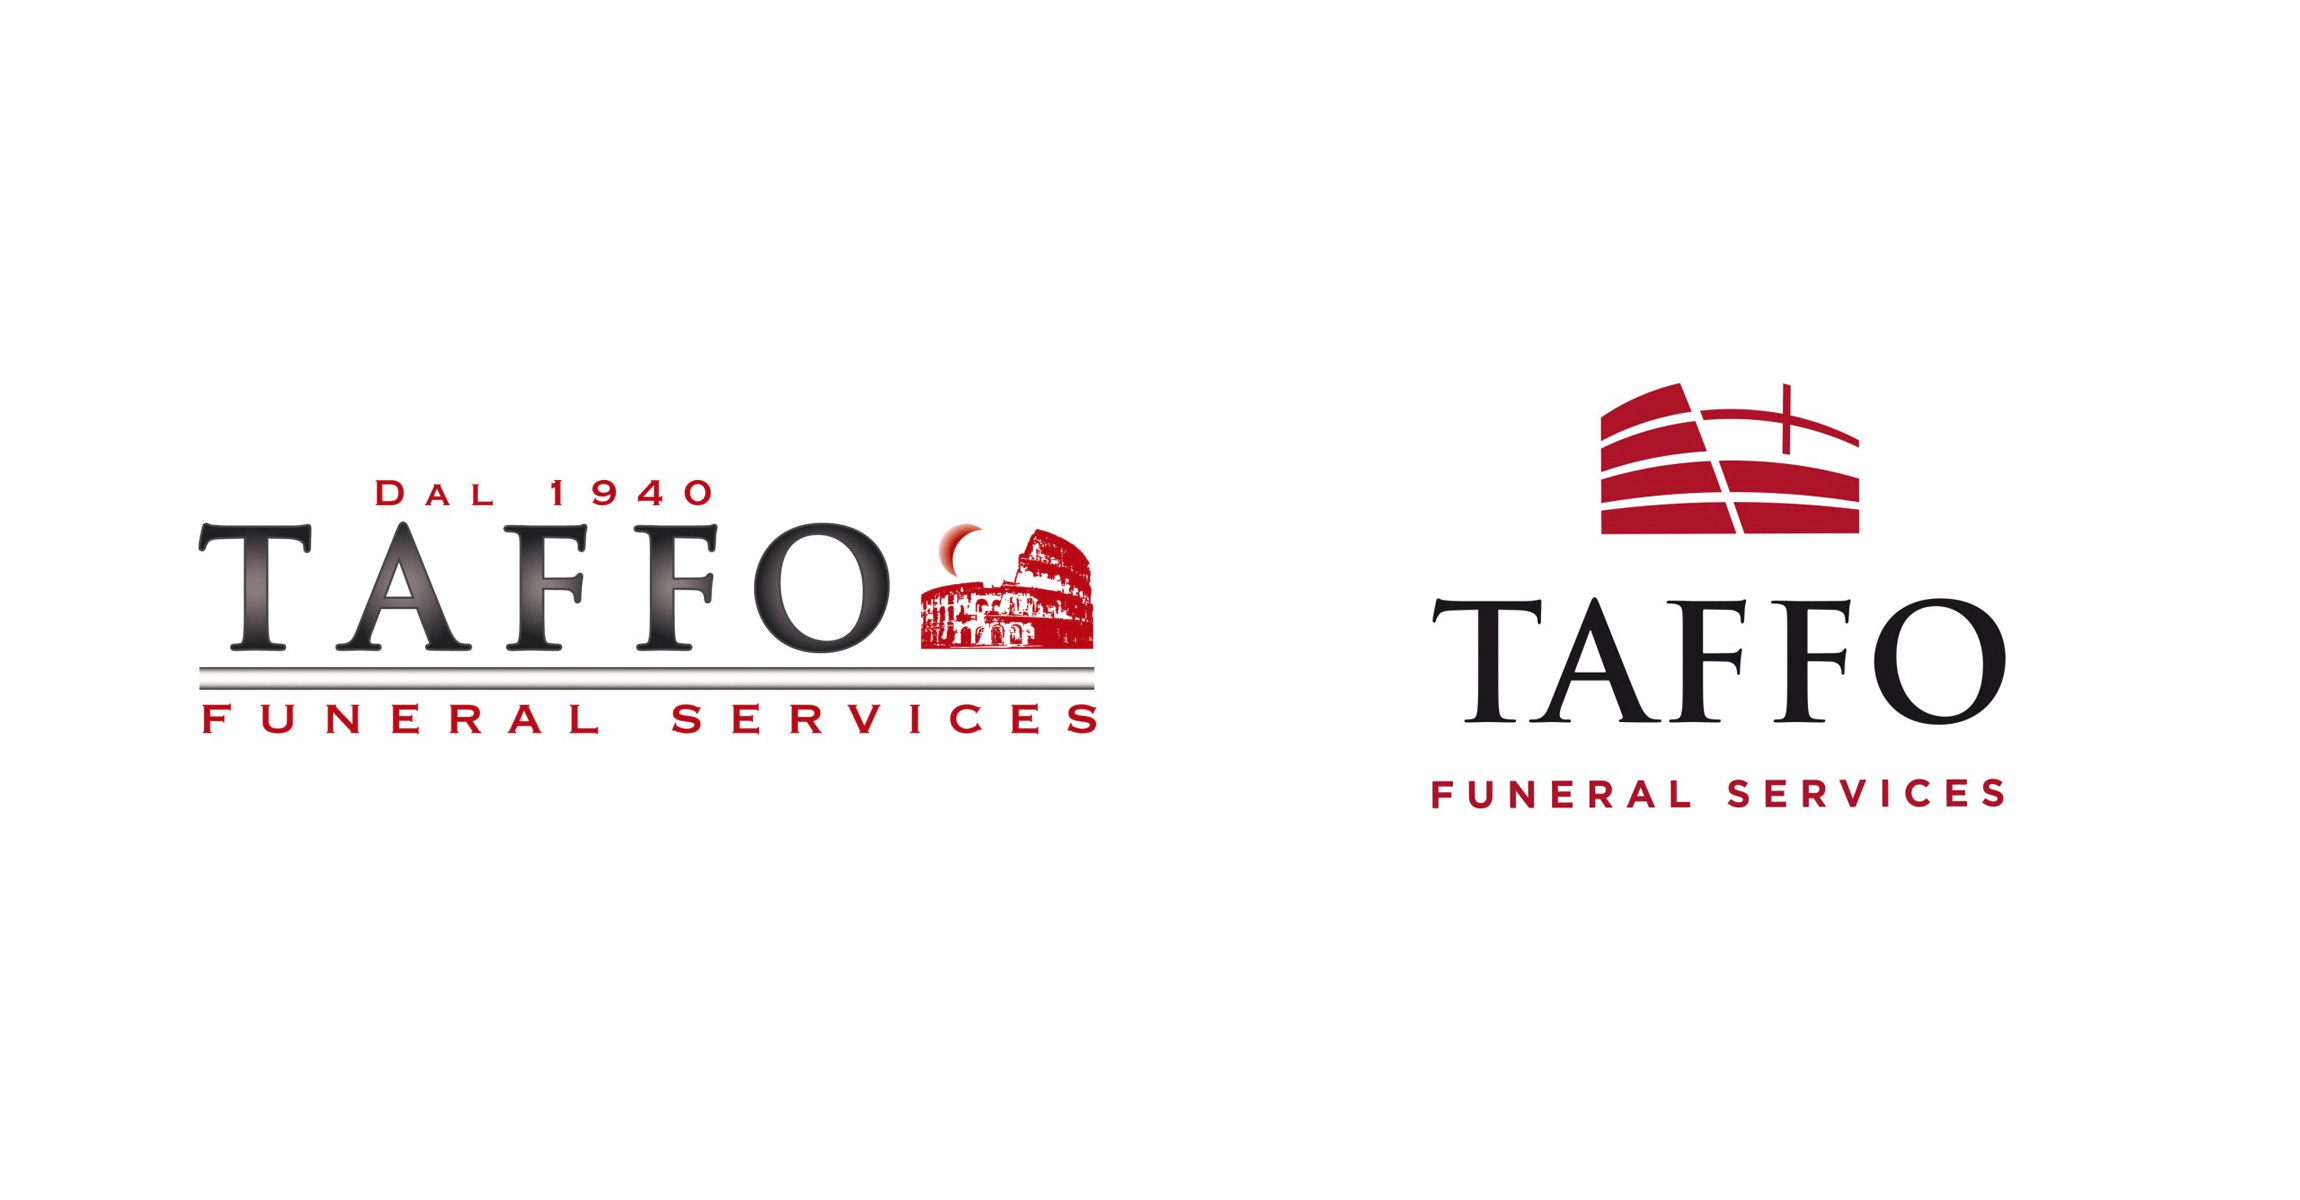 Taffo Funeral Services